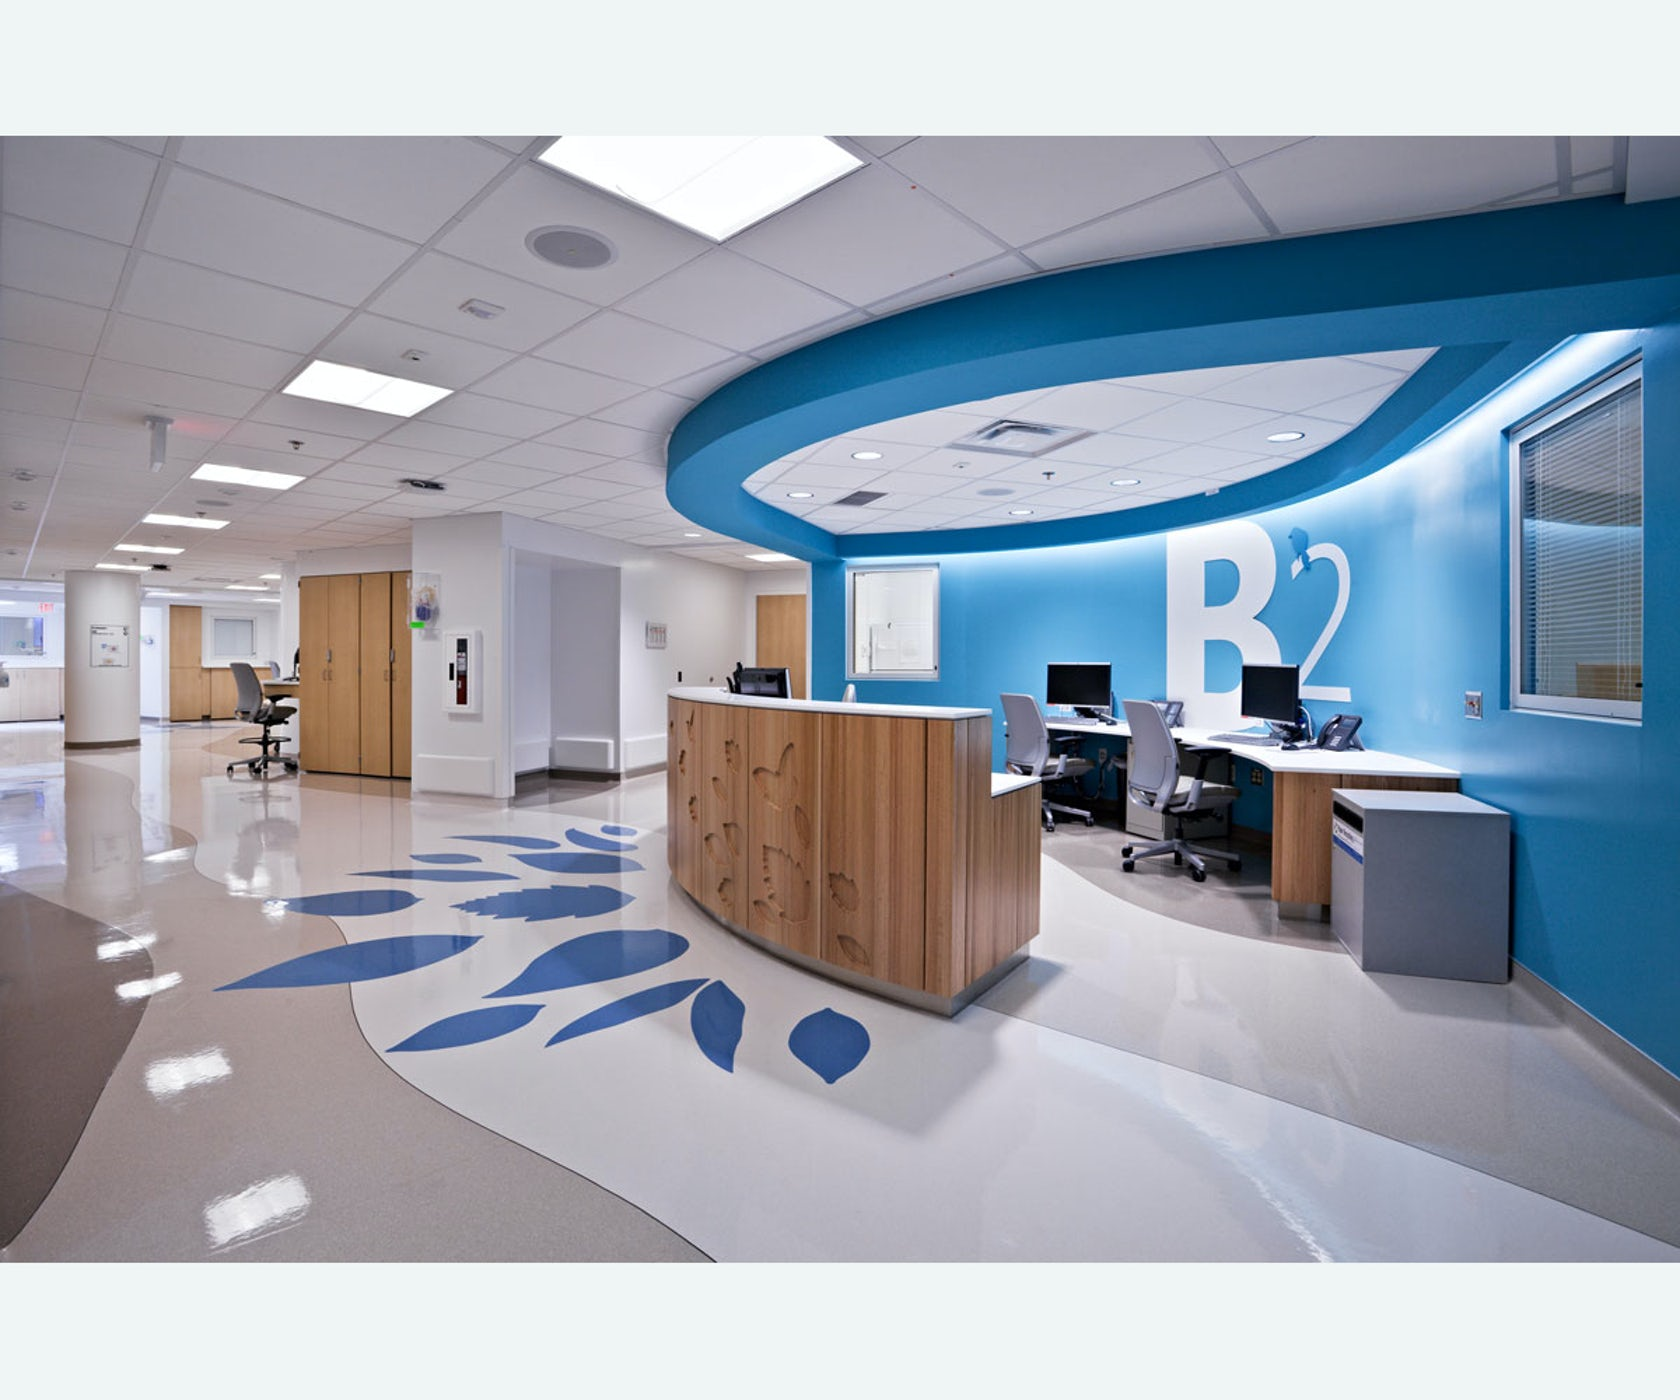 Nationwide children 39 s hospital wayfinding experience - Children s room interior images ...